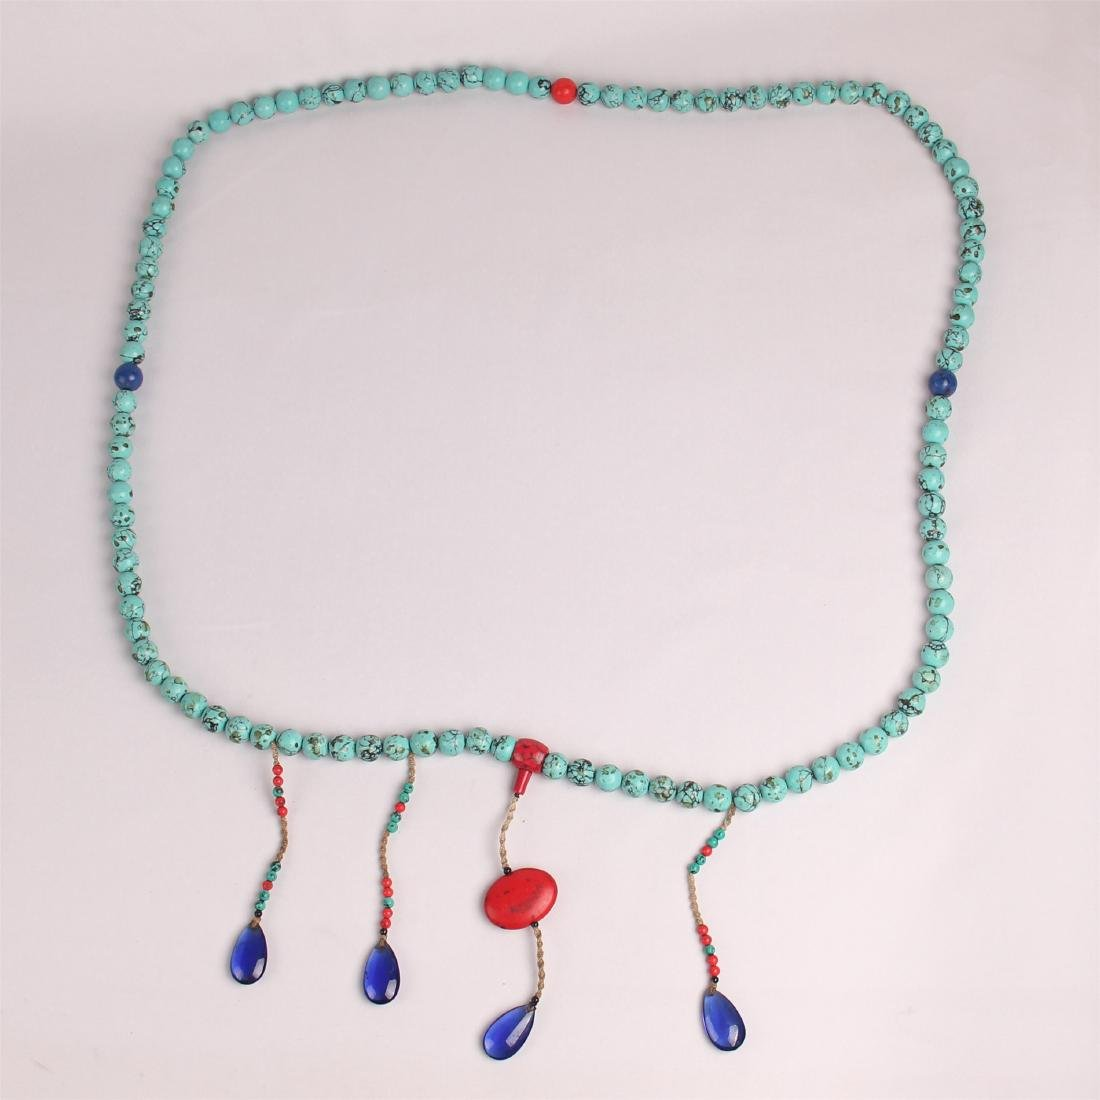 CHINESE TURQUOISE BEADS COURT NECKLACE CHAOZHU